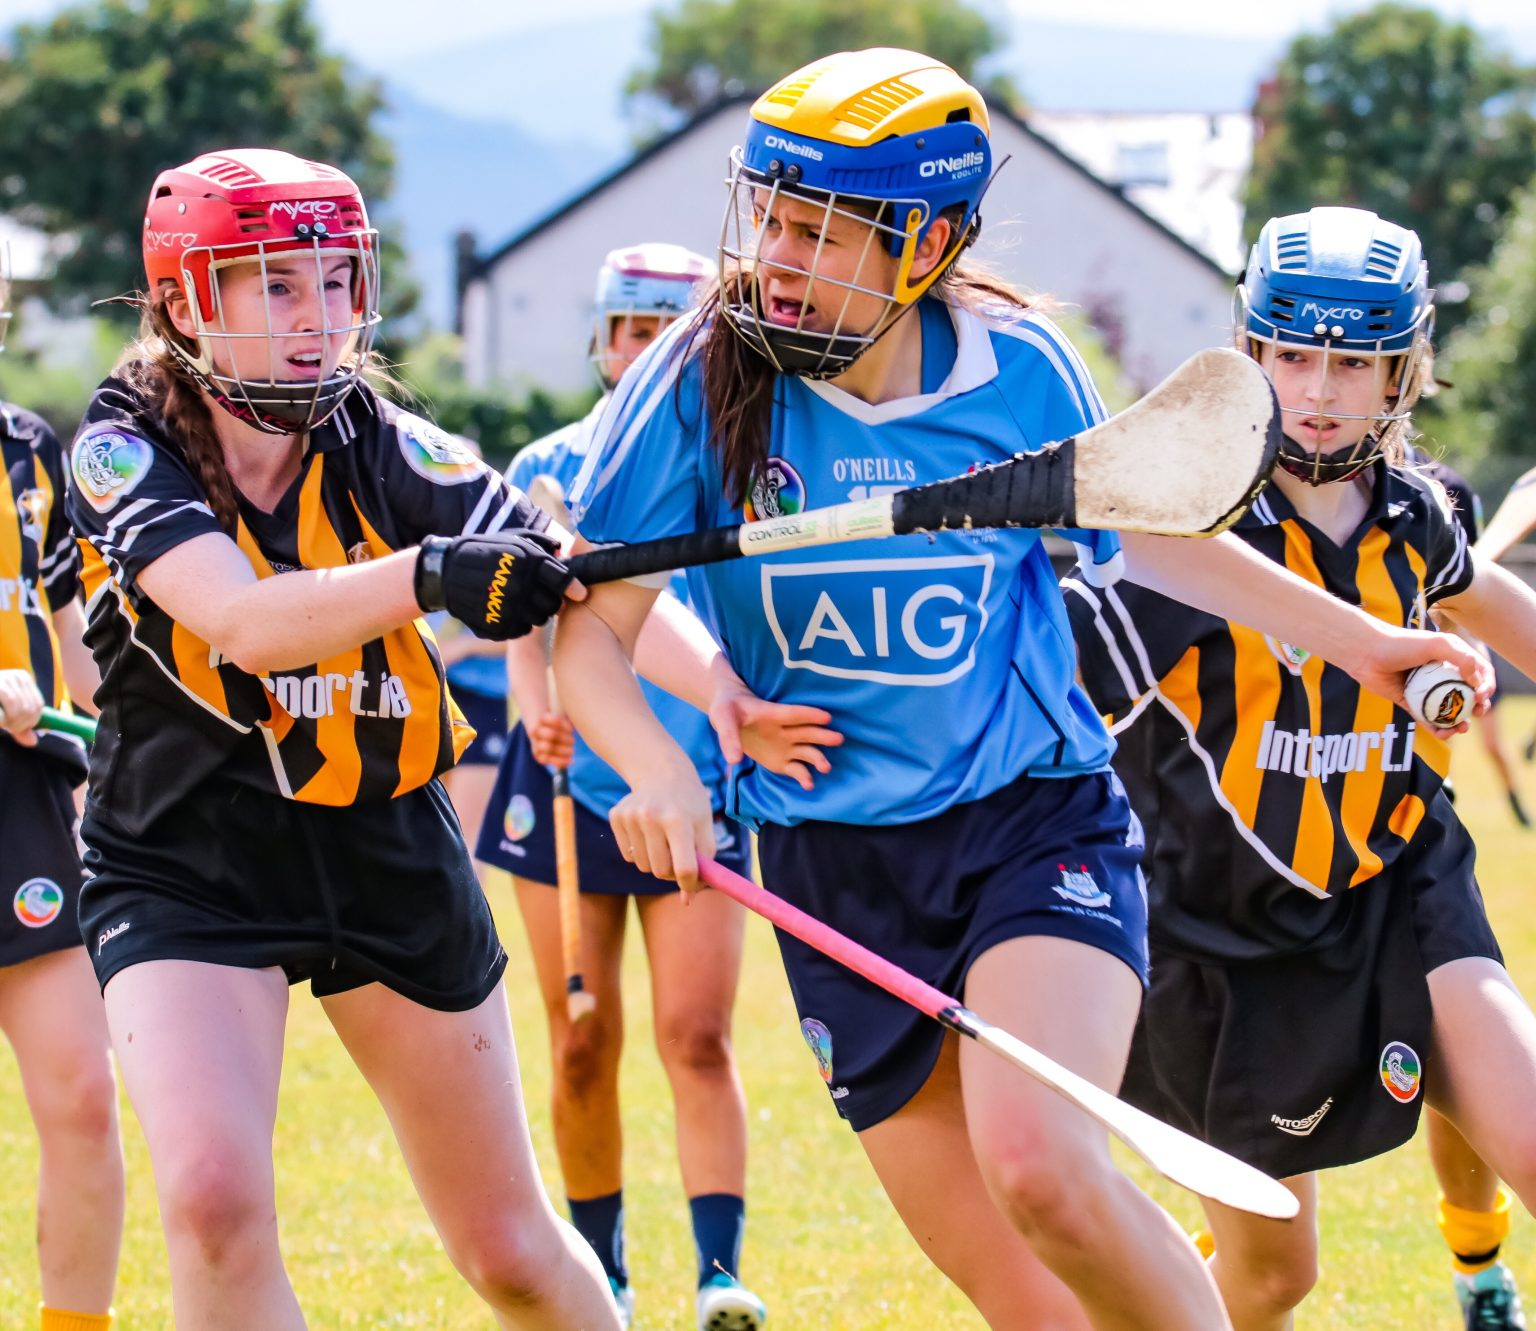 Dublin Camogie Player in sky blue jersey, navy skort and yellow and blue helmet breaking the tackle of a Kilkenny player in an amber and black striped jersey, black skort and red helmet as Four first half goals secured victory for Dublin